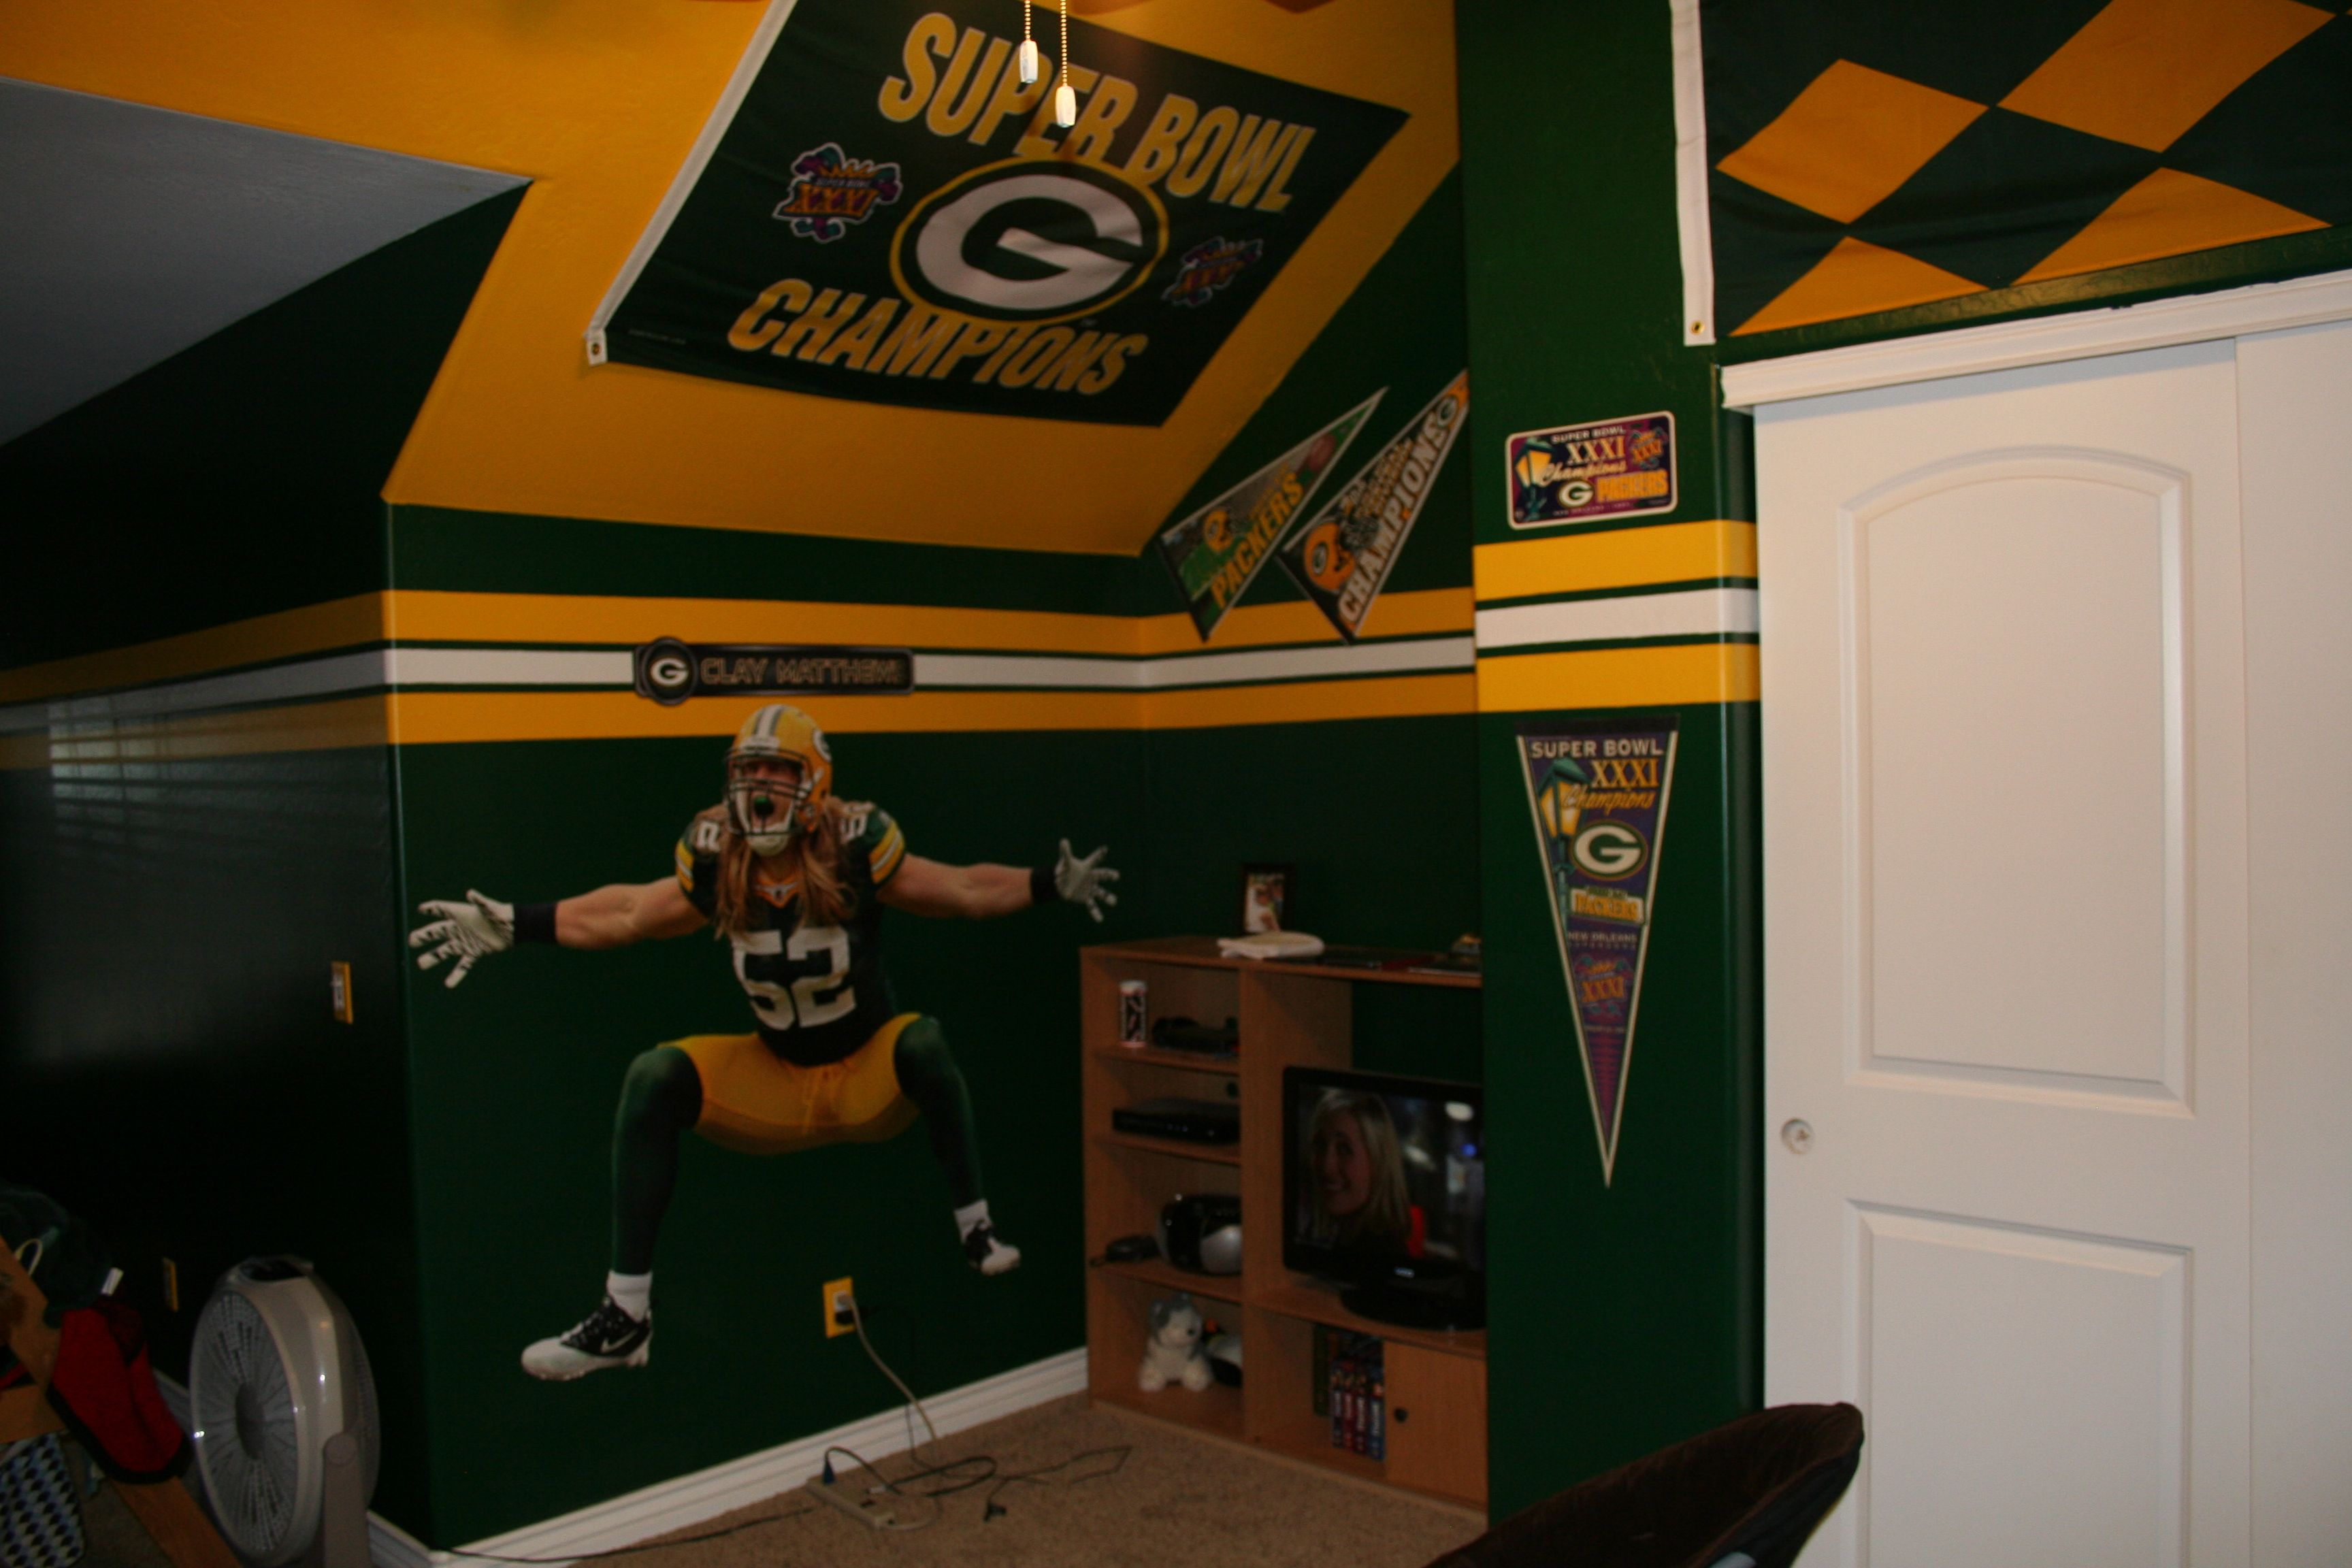 My Son S Green Bay Packer Bedroom With Images Green Bay